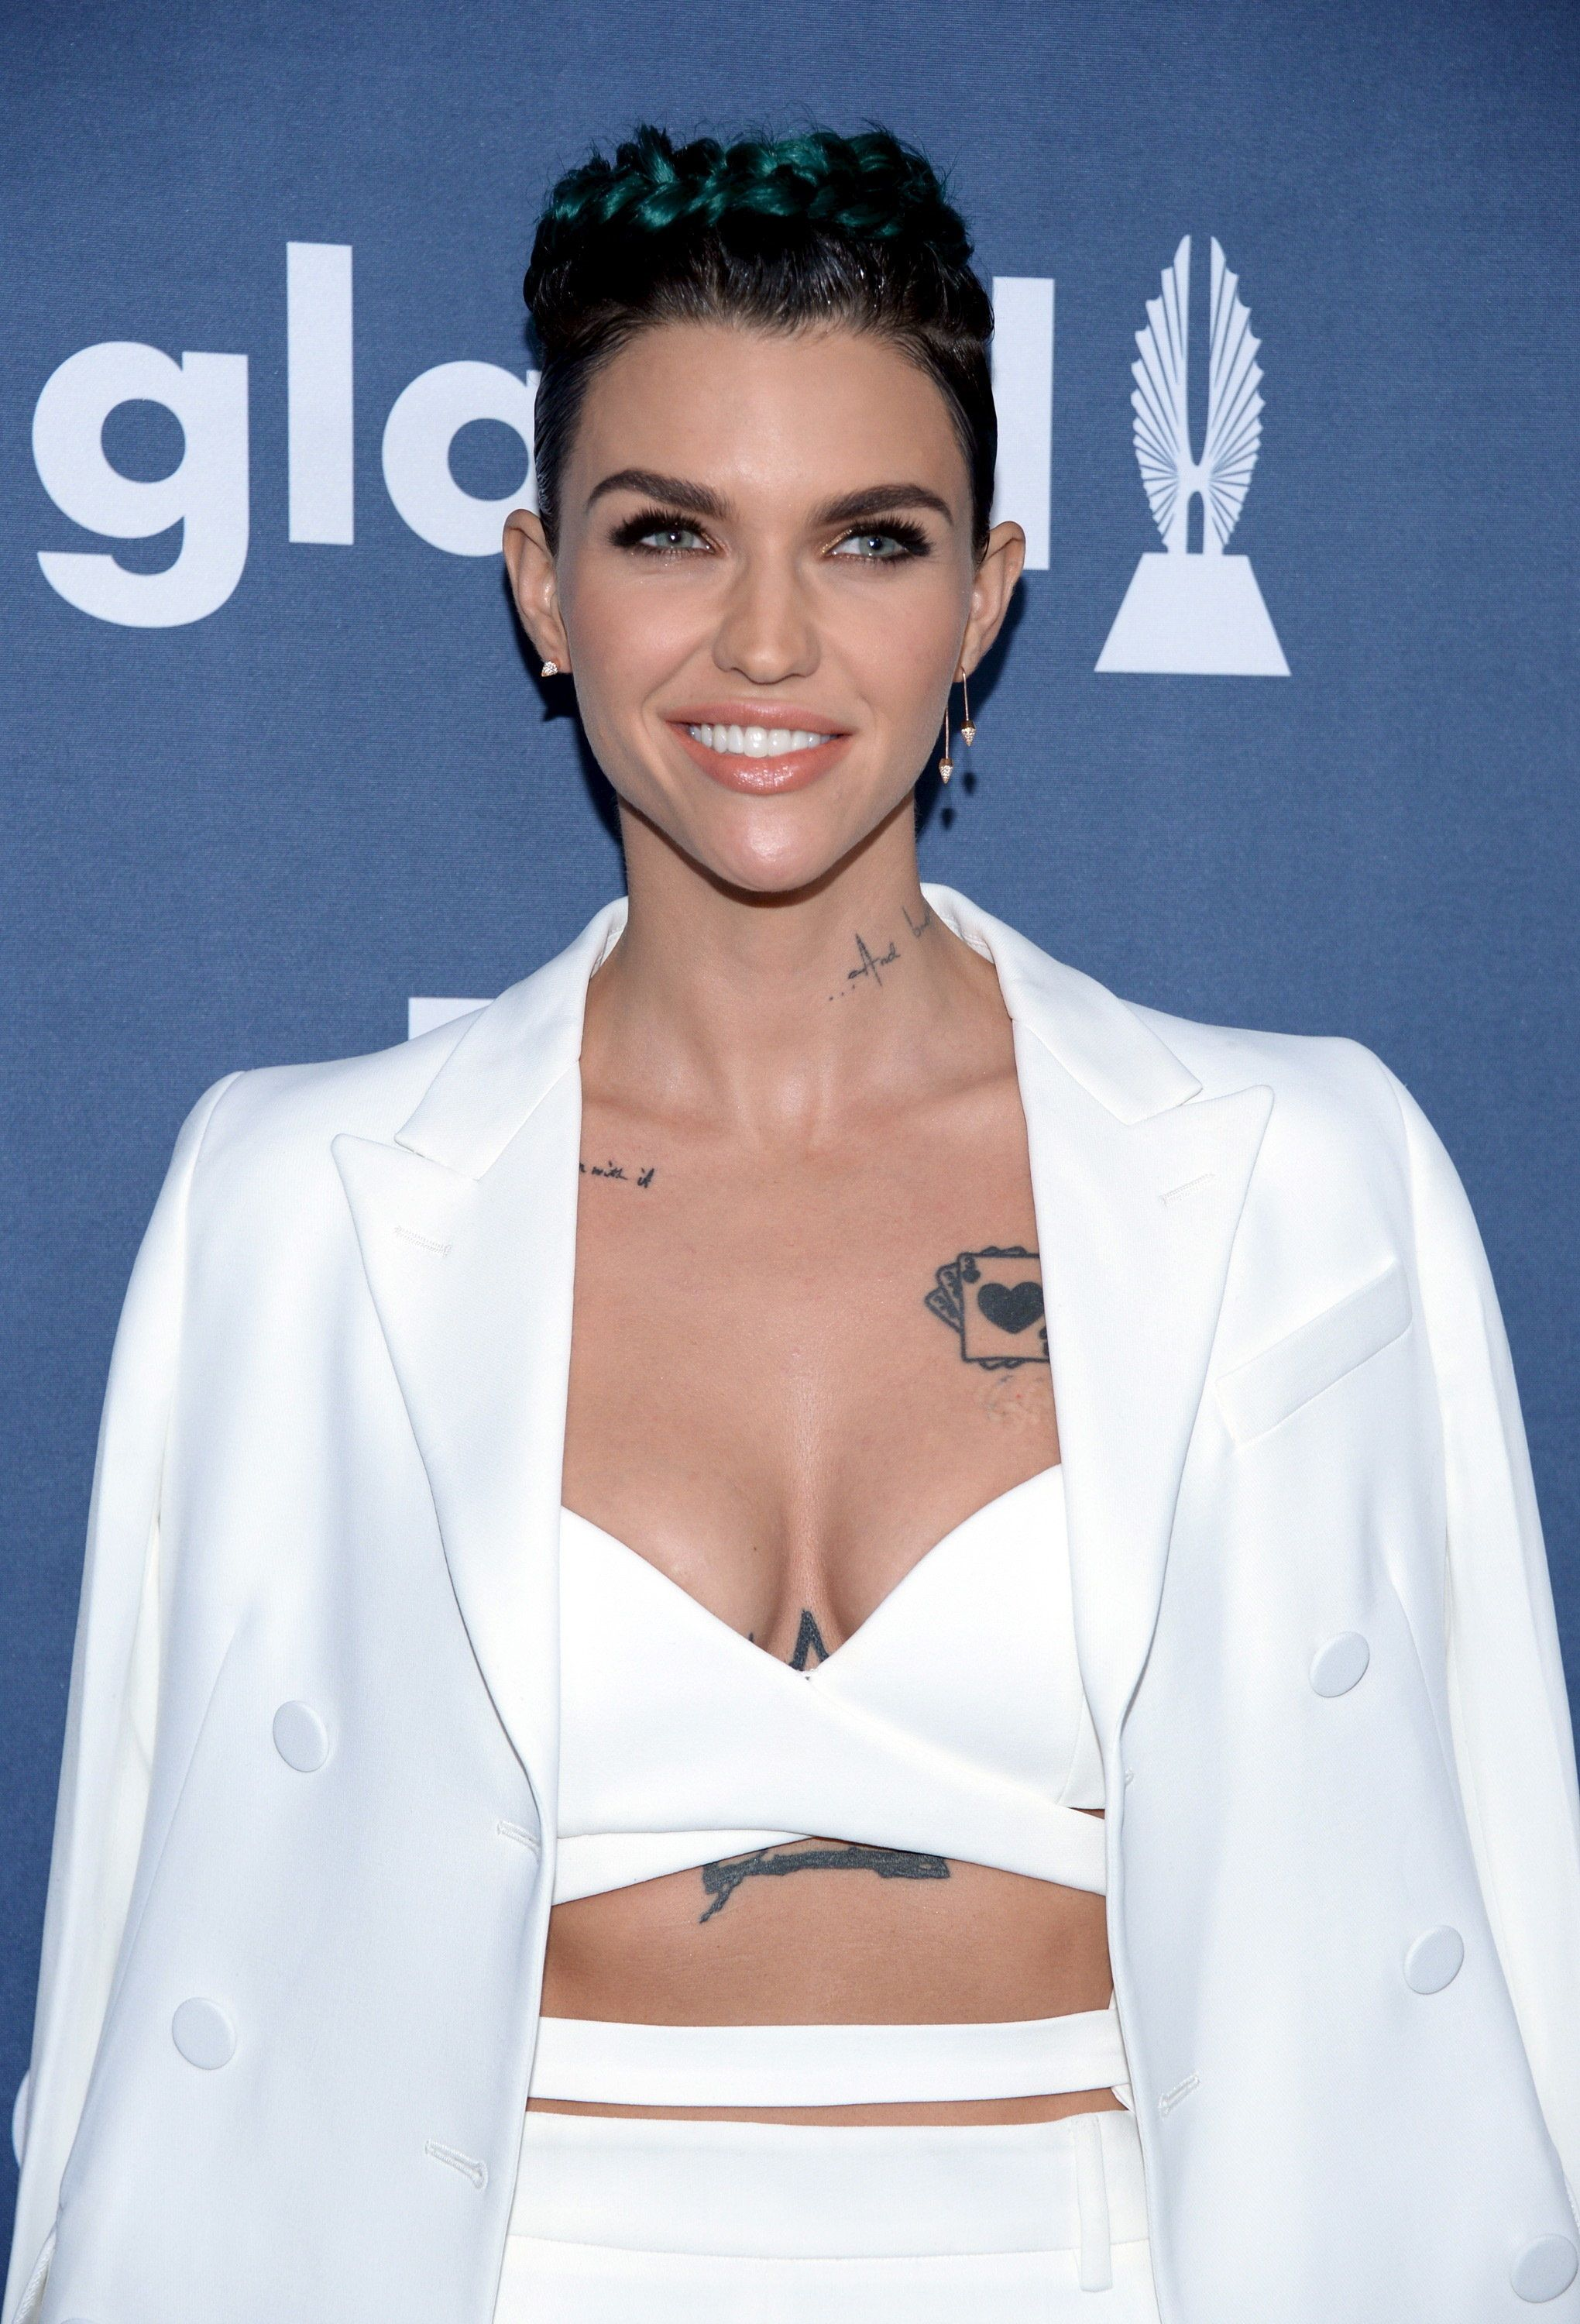 Ruby Rose attends the 27th annual GLAAD Media Awards in Beverly Hills, California April 2, 2016. REUTERS/Phil McCarten